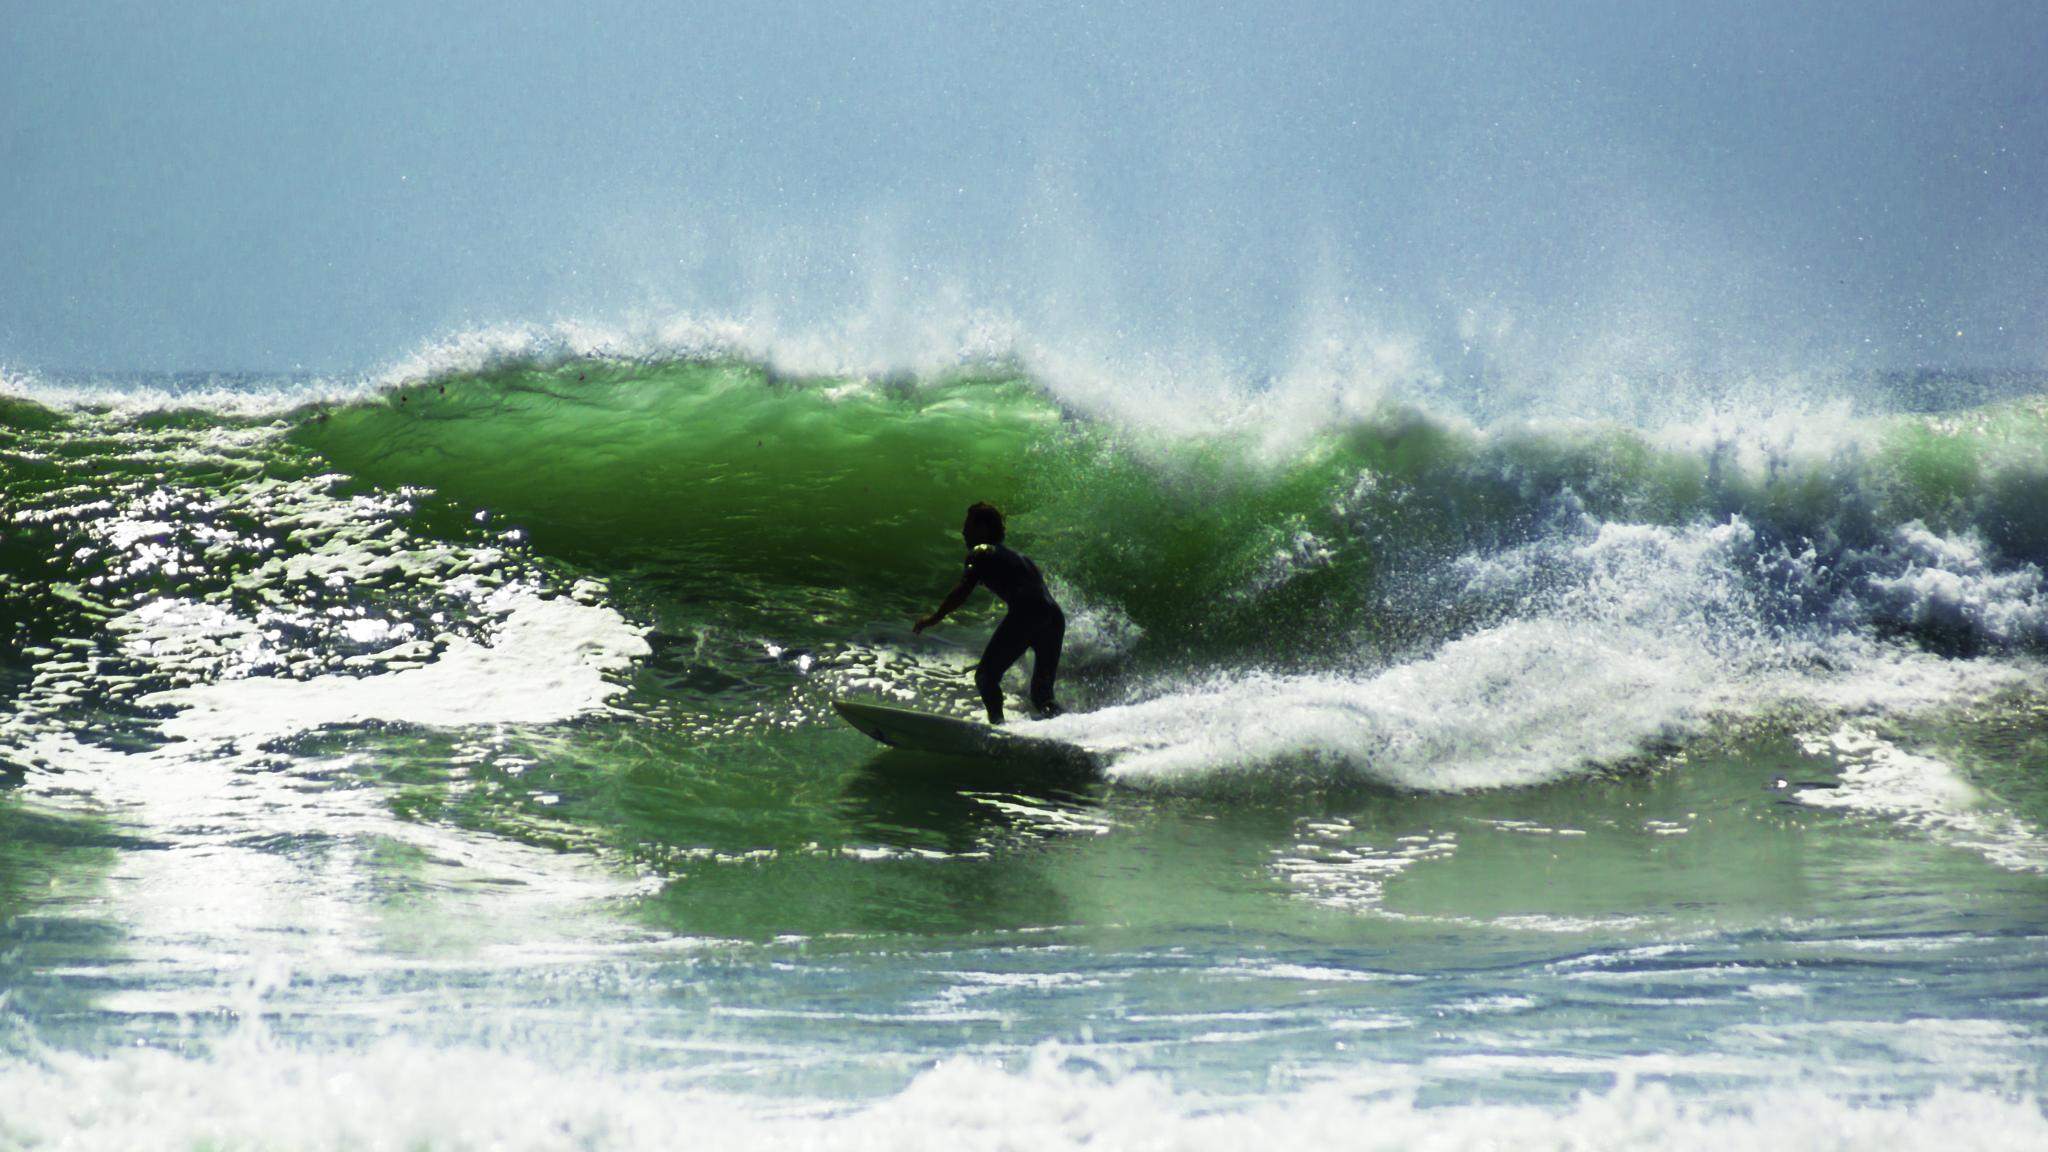 Into The Green Water 1 by JoeGeraci